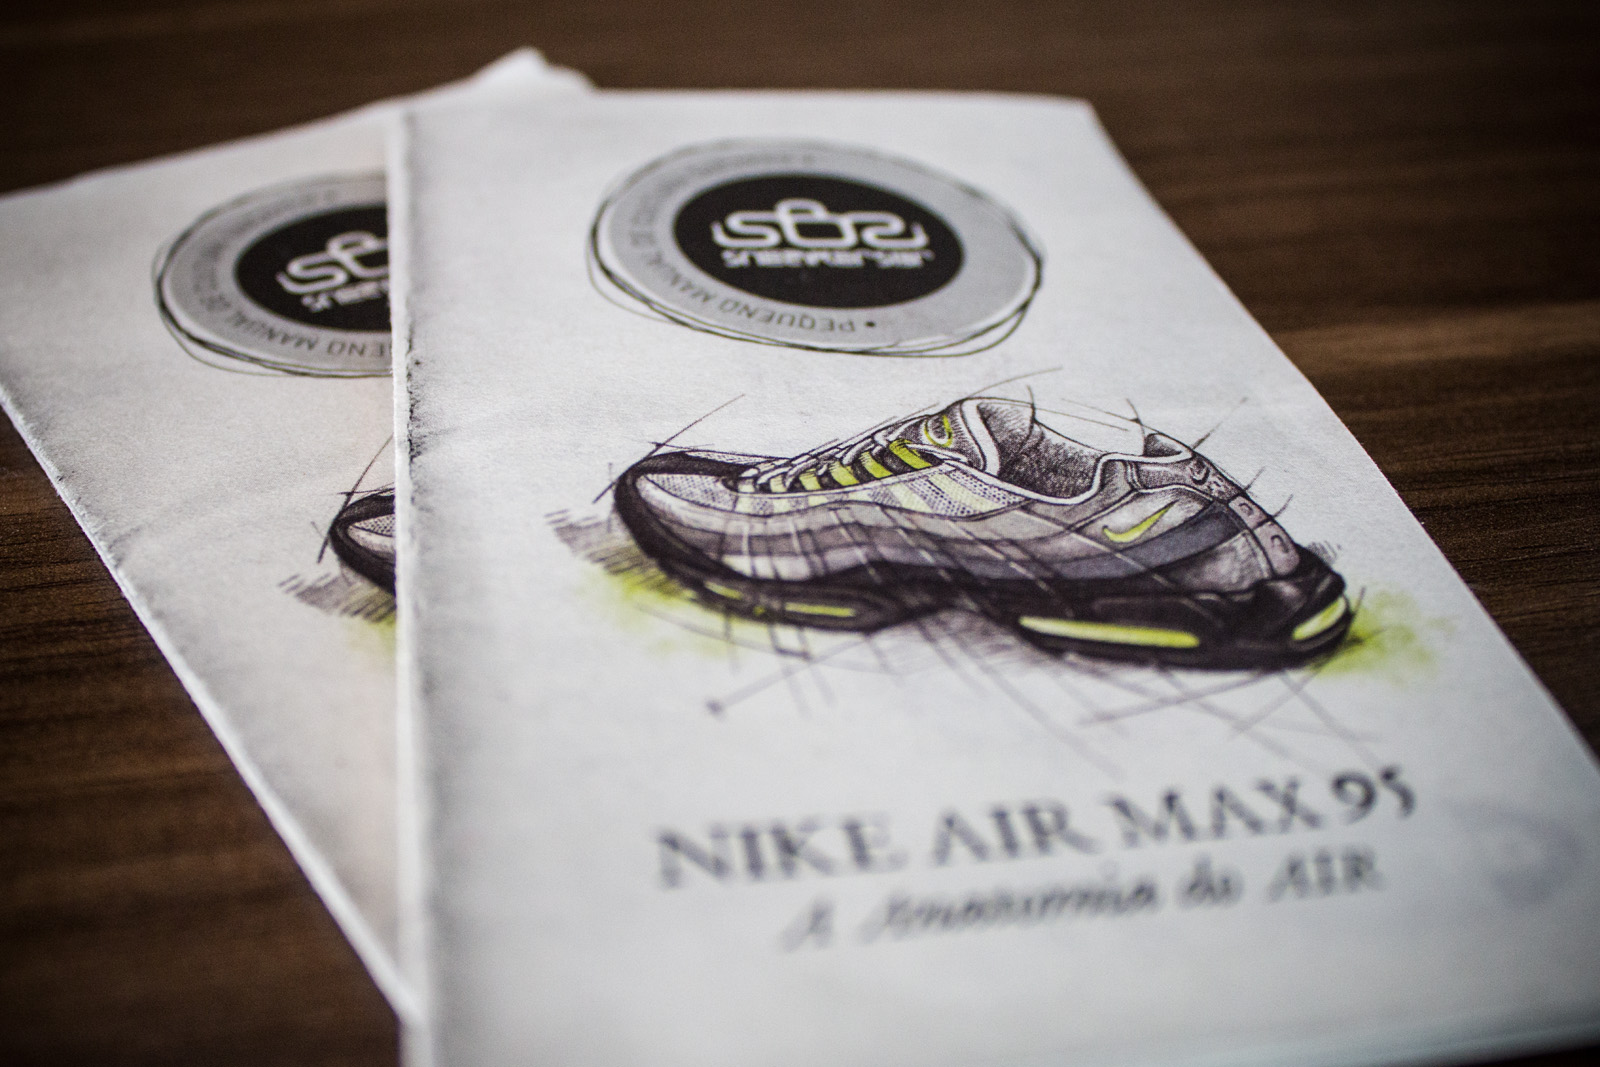 SneakersBR E Nike Sportswear Apresentam: Pequeno Manual De Cultura Sneaker Vol.2 – Air Max 95 – A Anatomia Do AIR